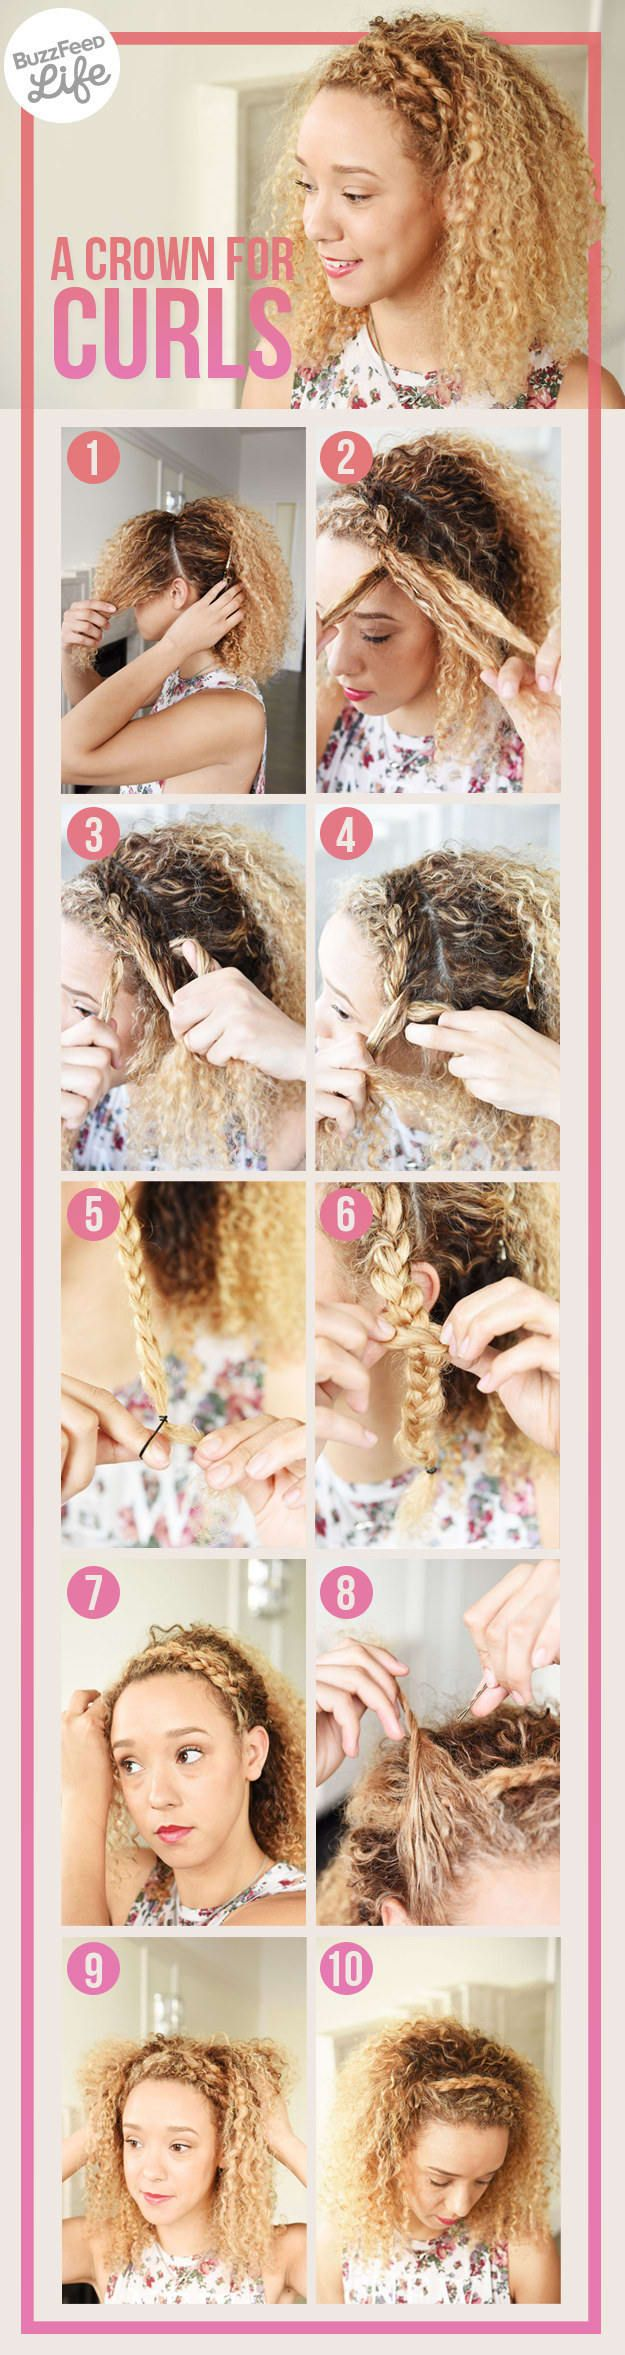 What You'll Need: - Bobby pins- Mini hair elastics - Tail comb- Hair clipsStep 1: Using a tail comb, create a front section of hair all the way around your head from ear to ear. Clip back the rest of your hair to keep it out of the way for now. Step 2: Beginning at one side of your head, French-braid the front section of hair along the hairline. Step 3: Continue the French braid, adding more hair to each strand as you go.Step 4: Once the braid is at your ear, continue with a traditional…